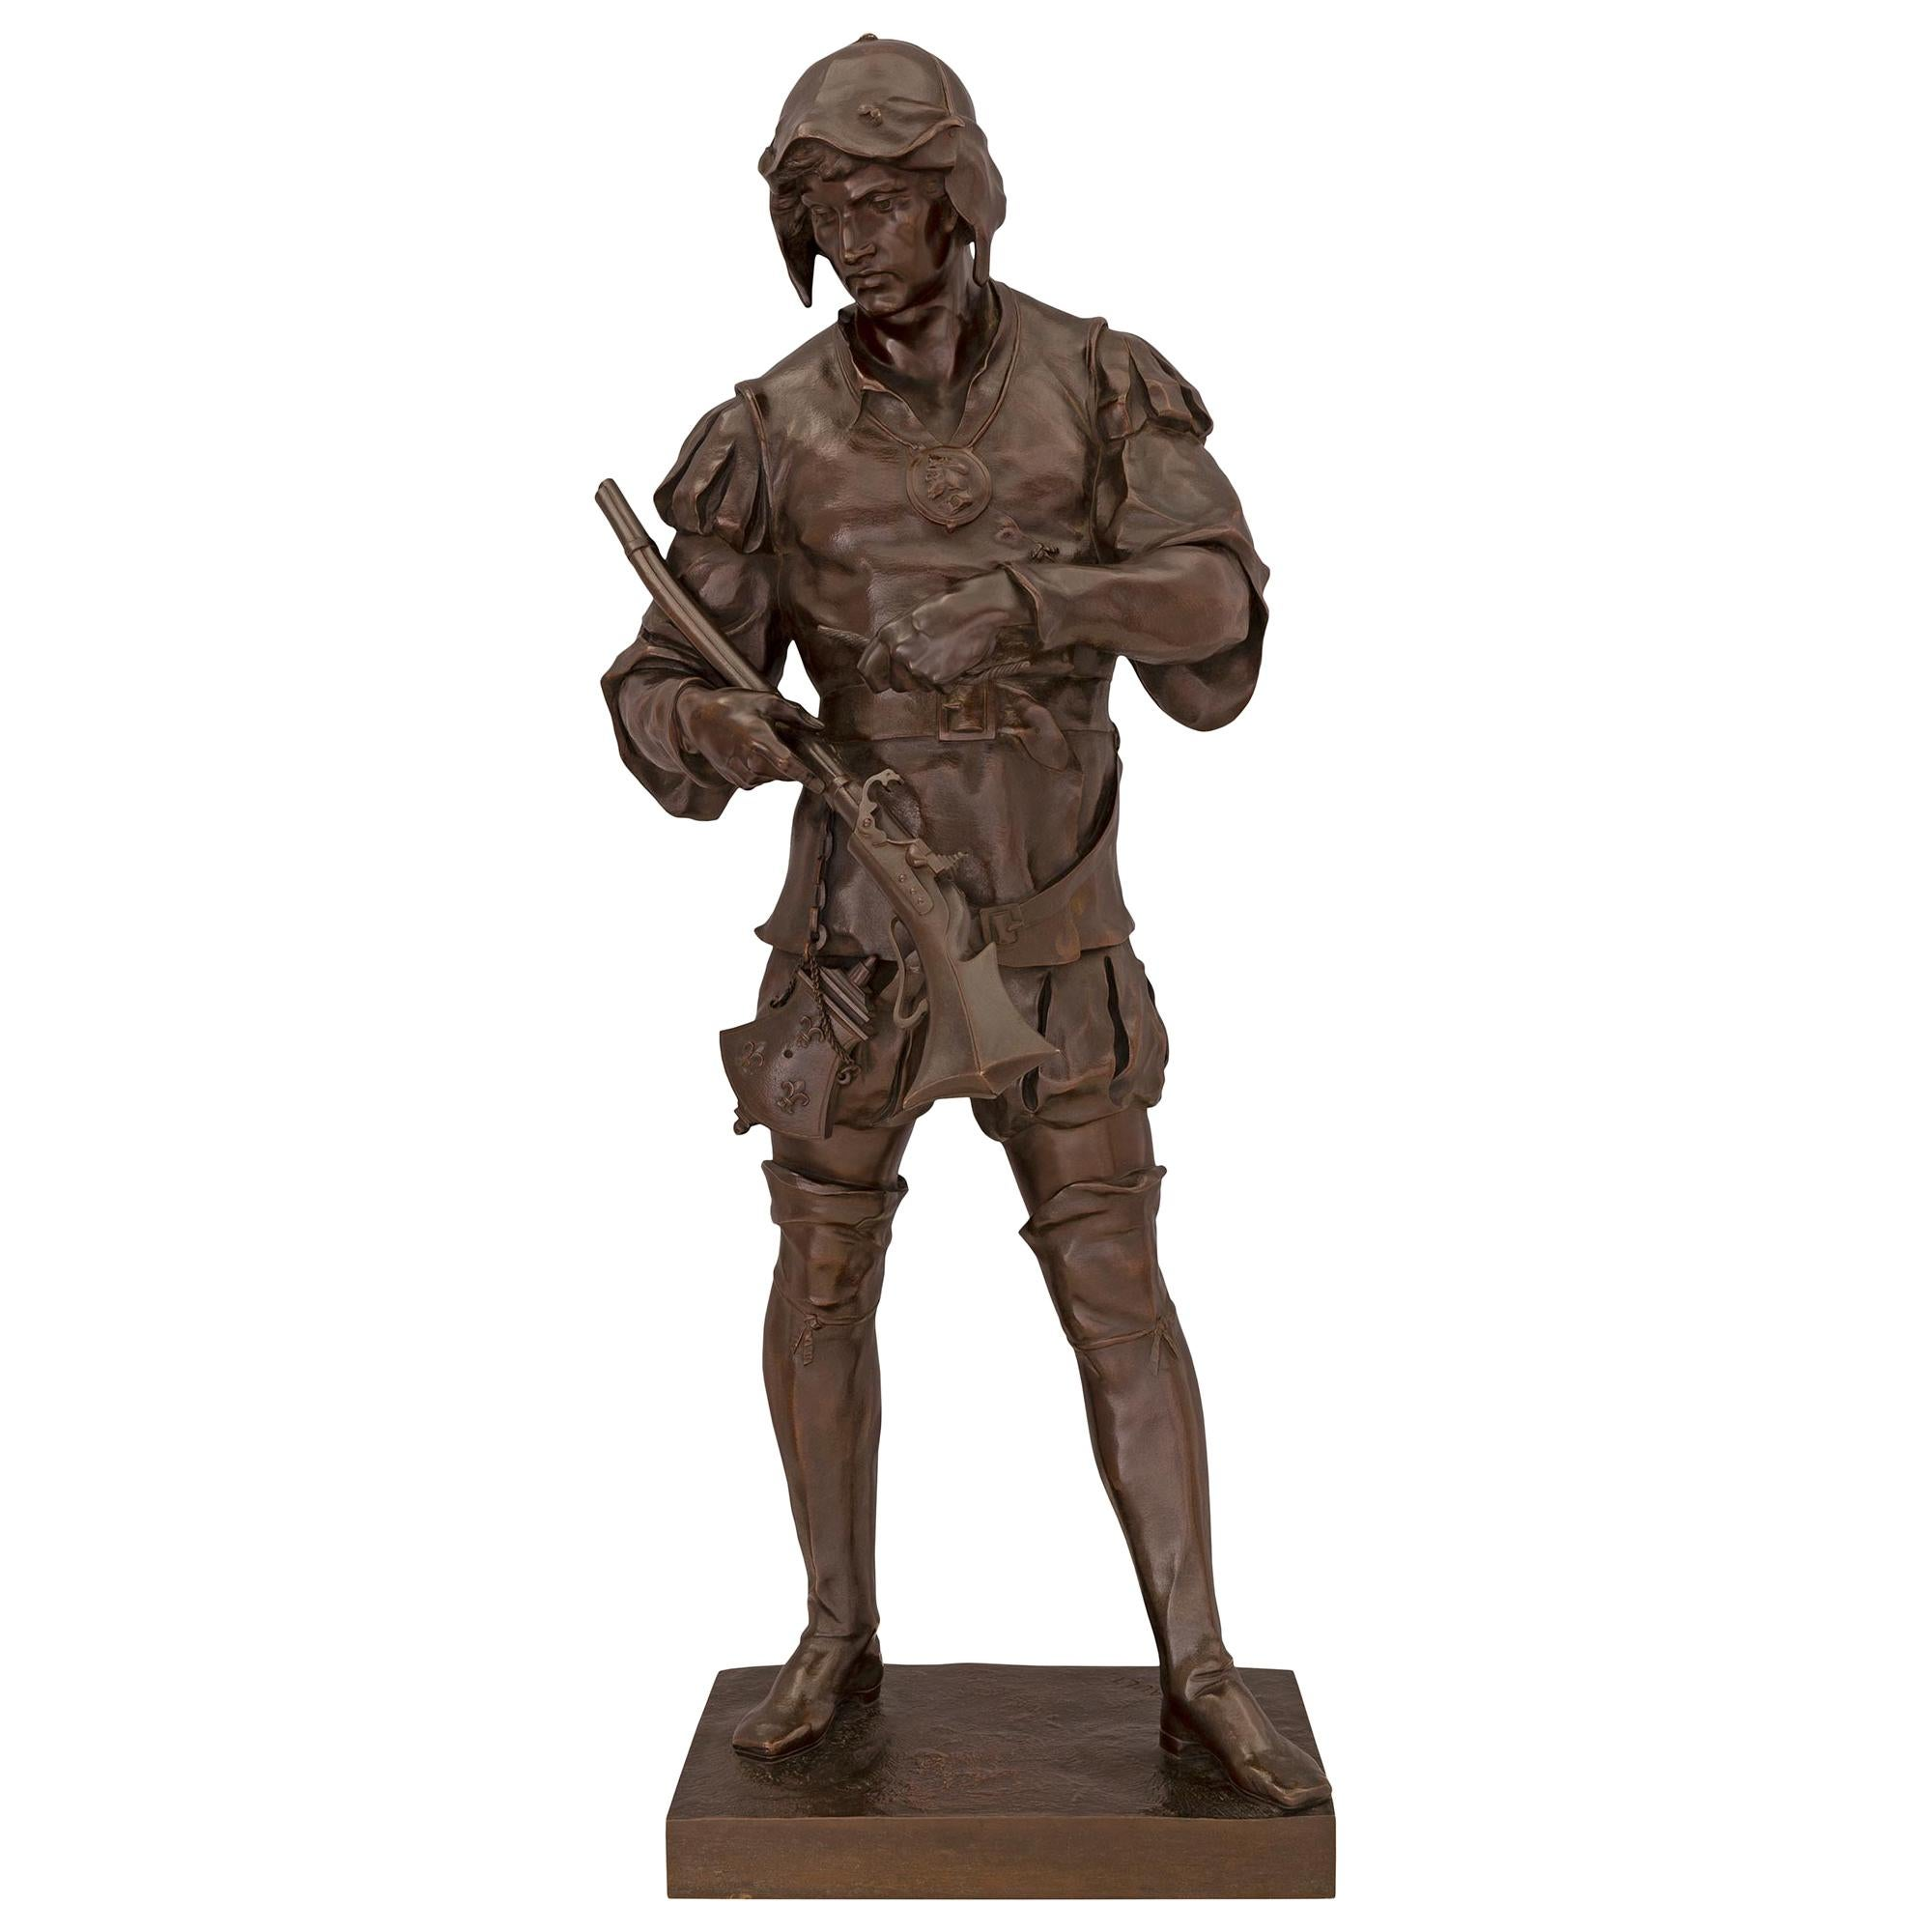 French 19th Century Patinated Bronze Statue of a Soldier, Signed E. Picault